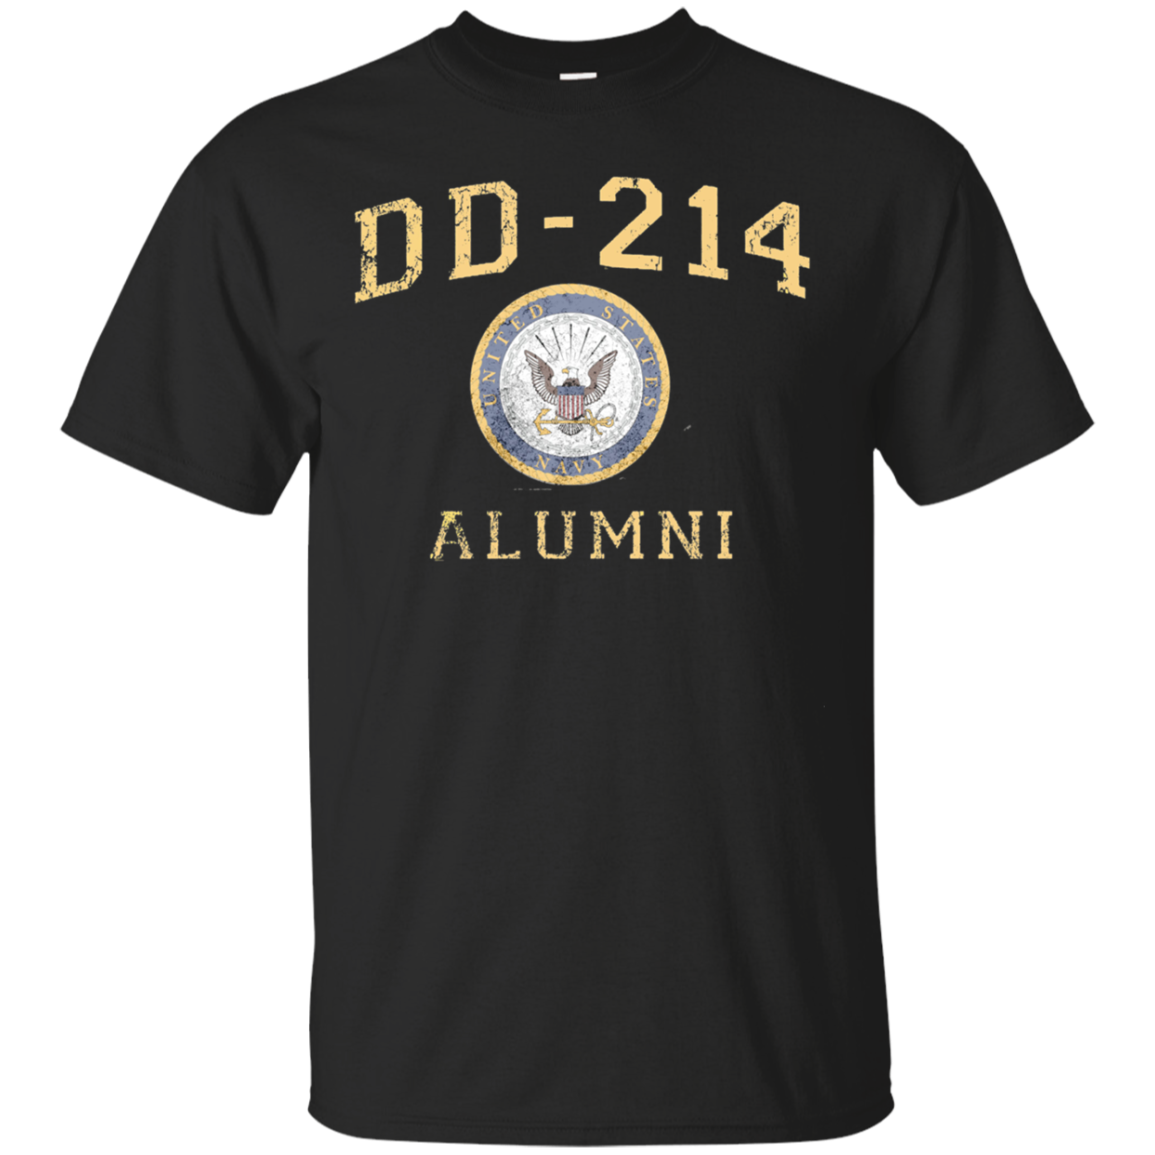 U.S Navy DD-214 Alumni T-Shirt Distressed Insignia